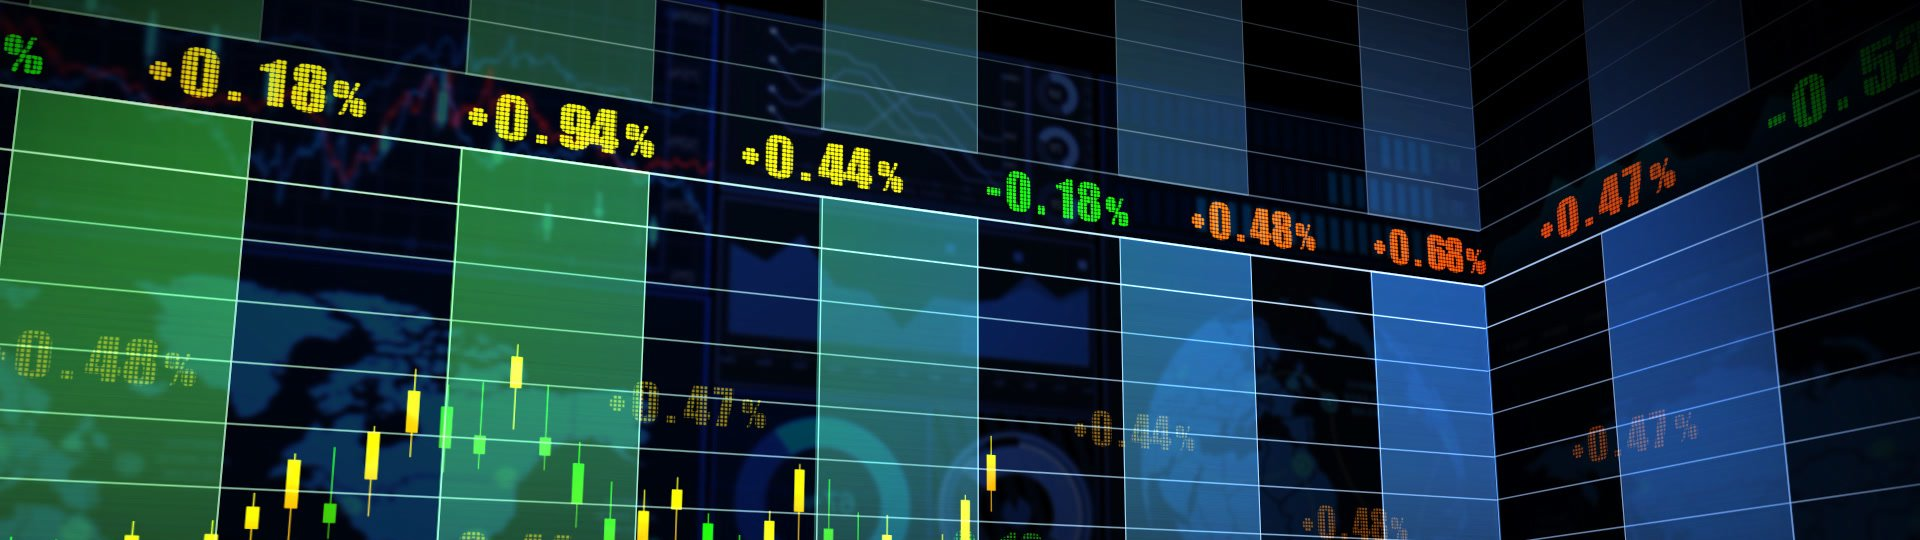 Stock Market_067 | Stock market trend of animation. Seamless loop. HD1080. - ID:17107